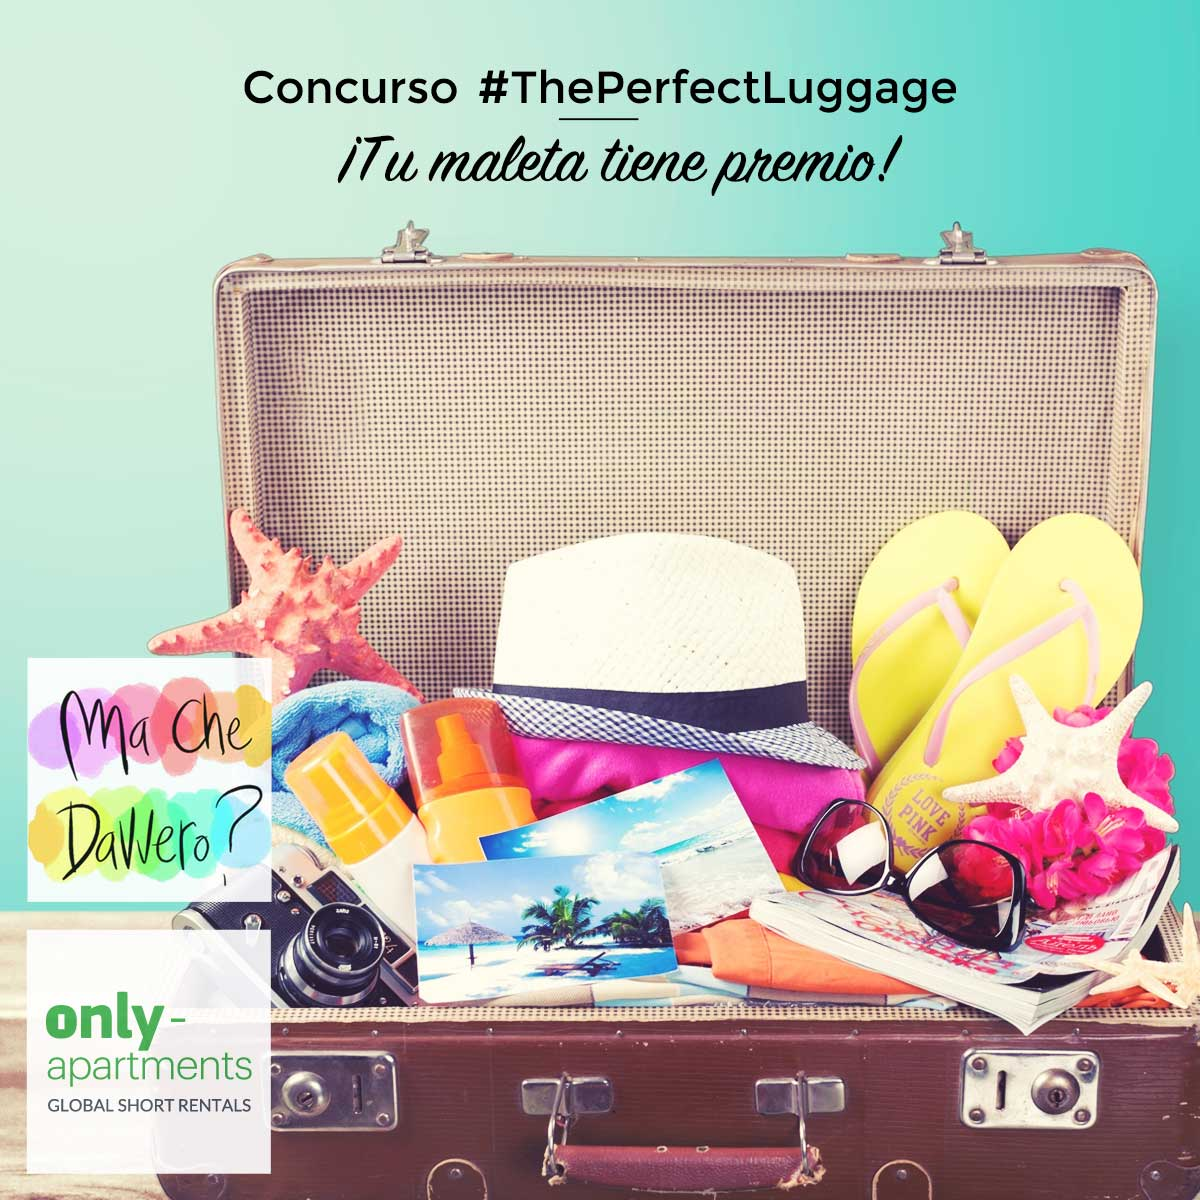 Concours #ThePerfectLuggage